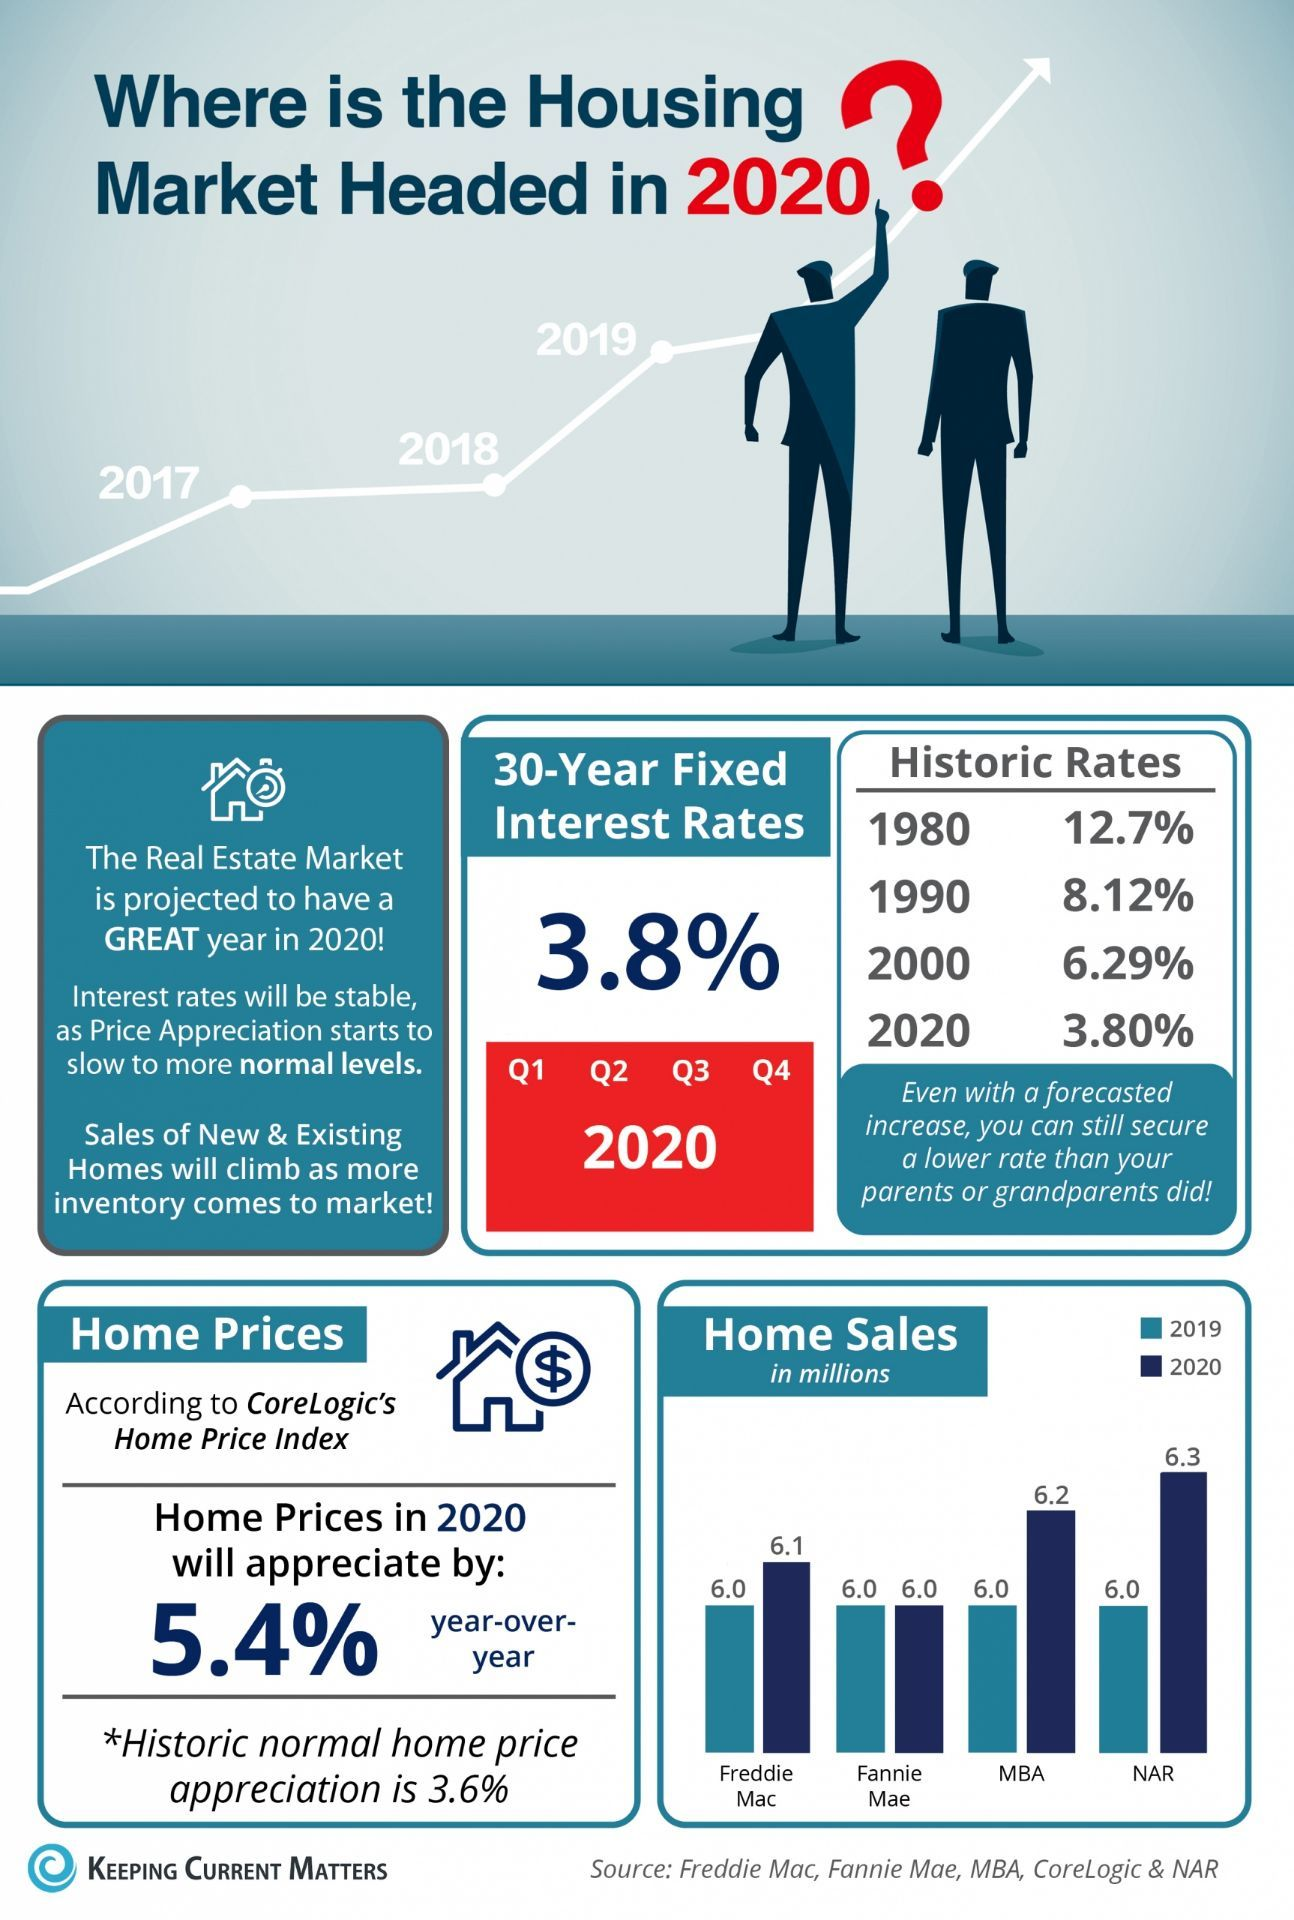 2020 Is Looking Strong For Home Buyers And Sellers Housingmarket 2020 Real Estate Marketing Housing Market Marketing